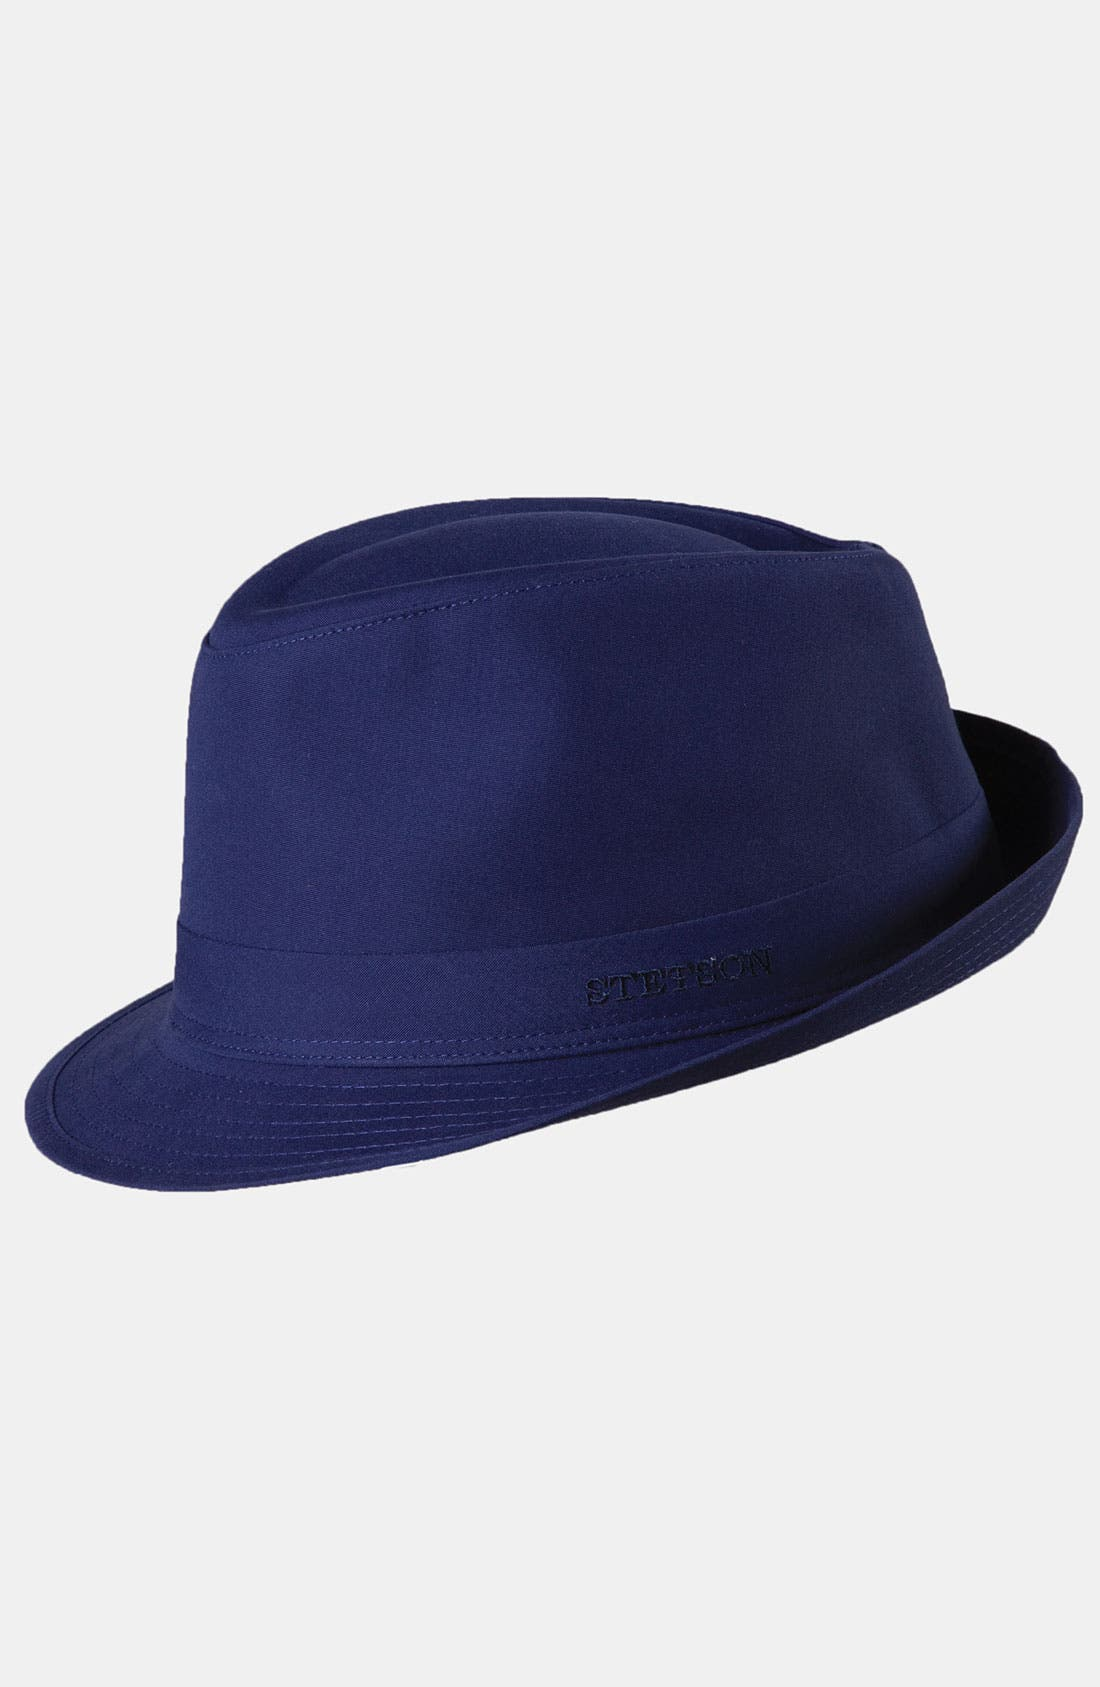 Main Image - Stetson Water Repellent Fedora